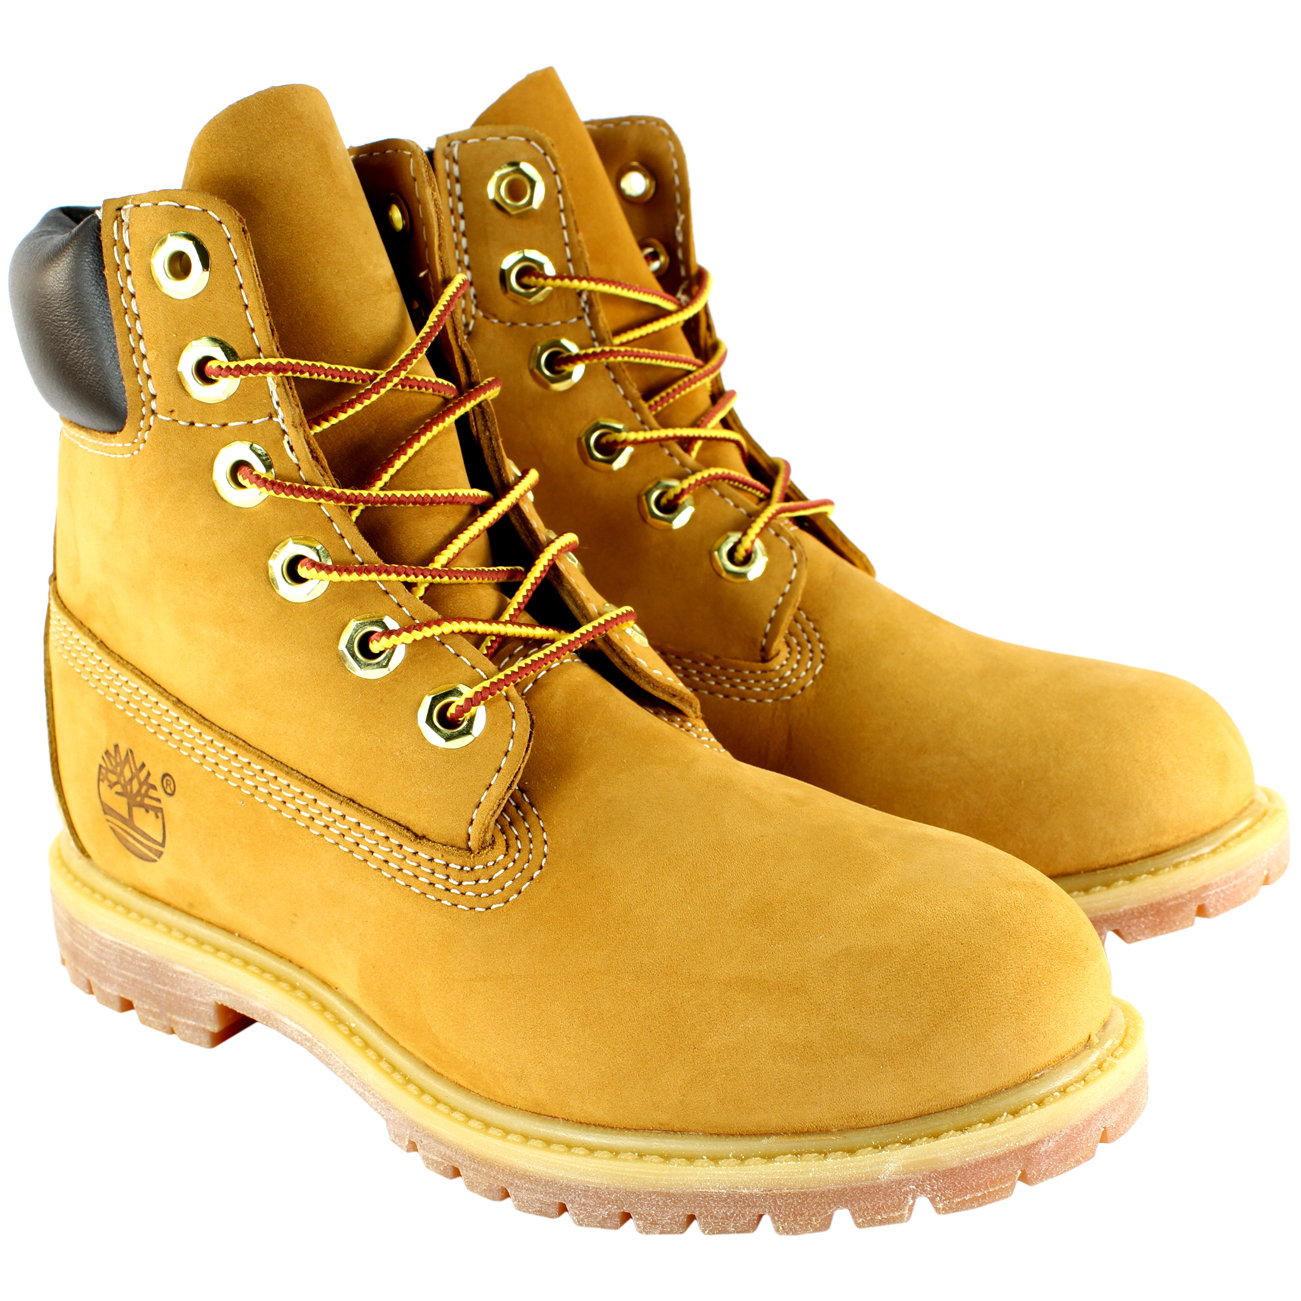 2bdbcd7d606d0 Details about Womens Timberland Premium Wheat Classic Beige Suede Original  Boot US Sizes 5-10